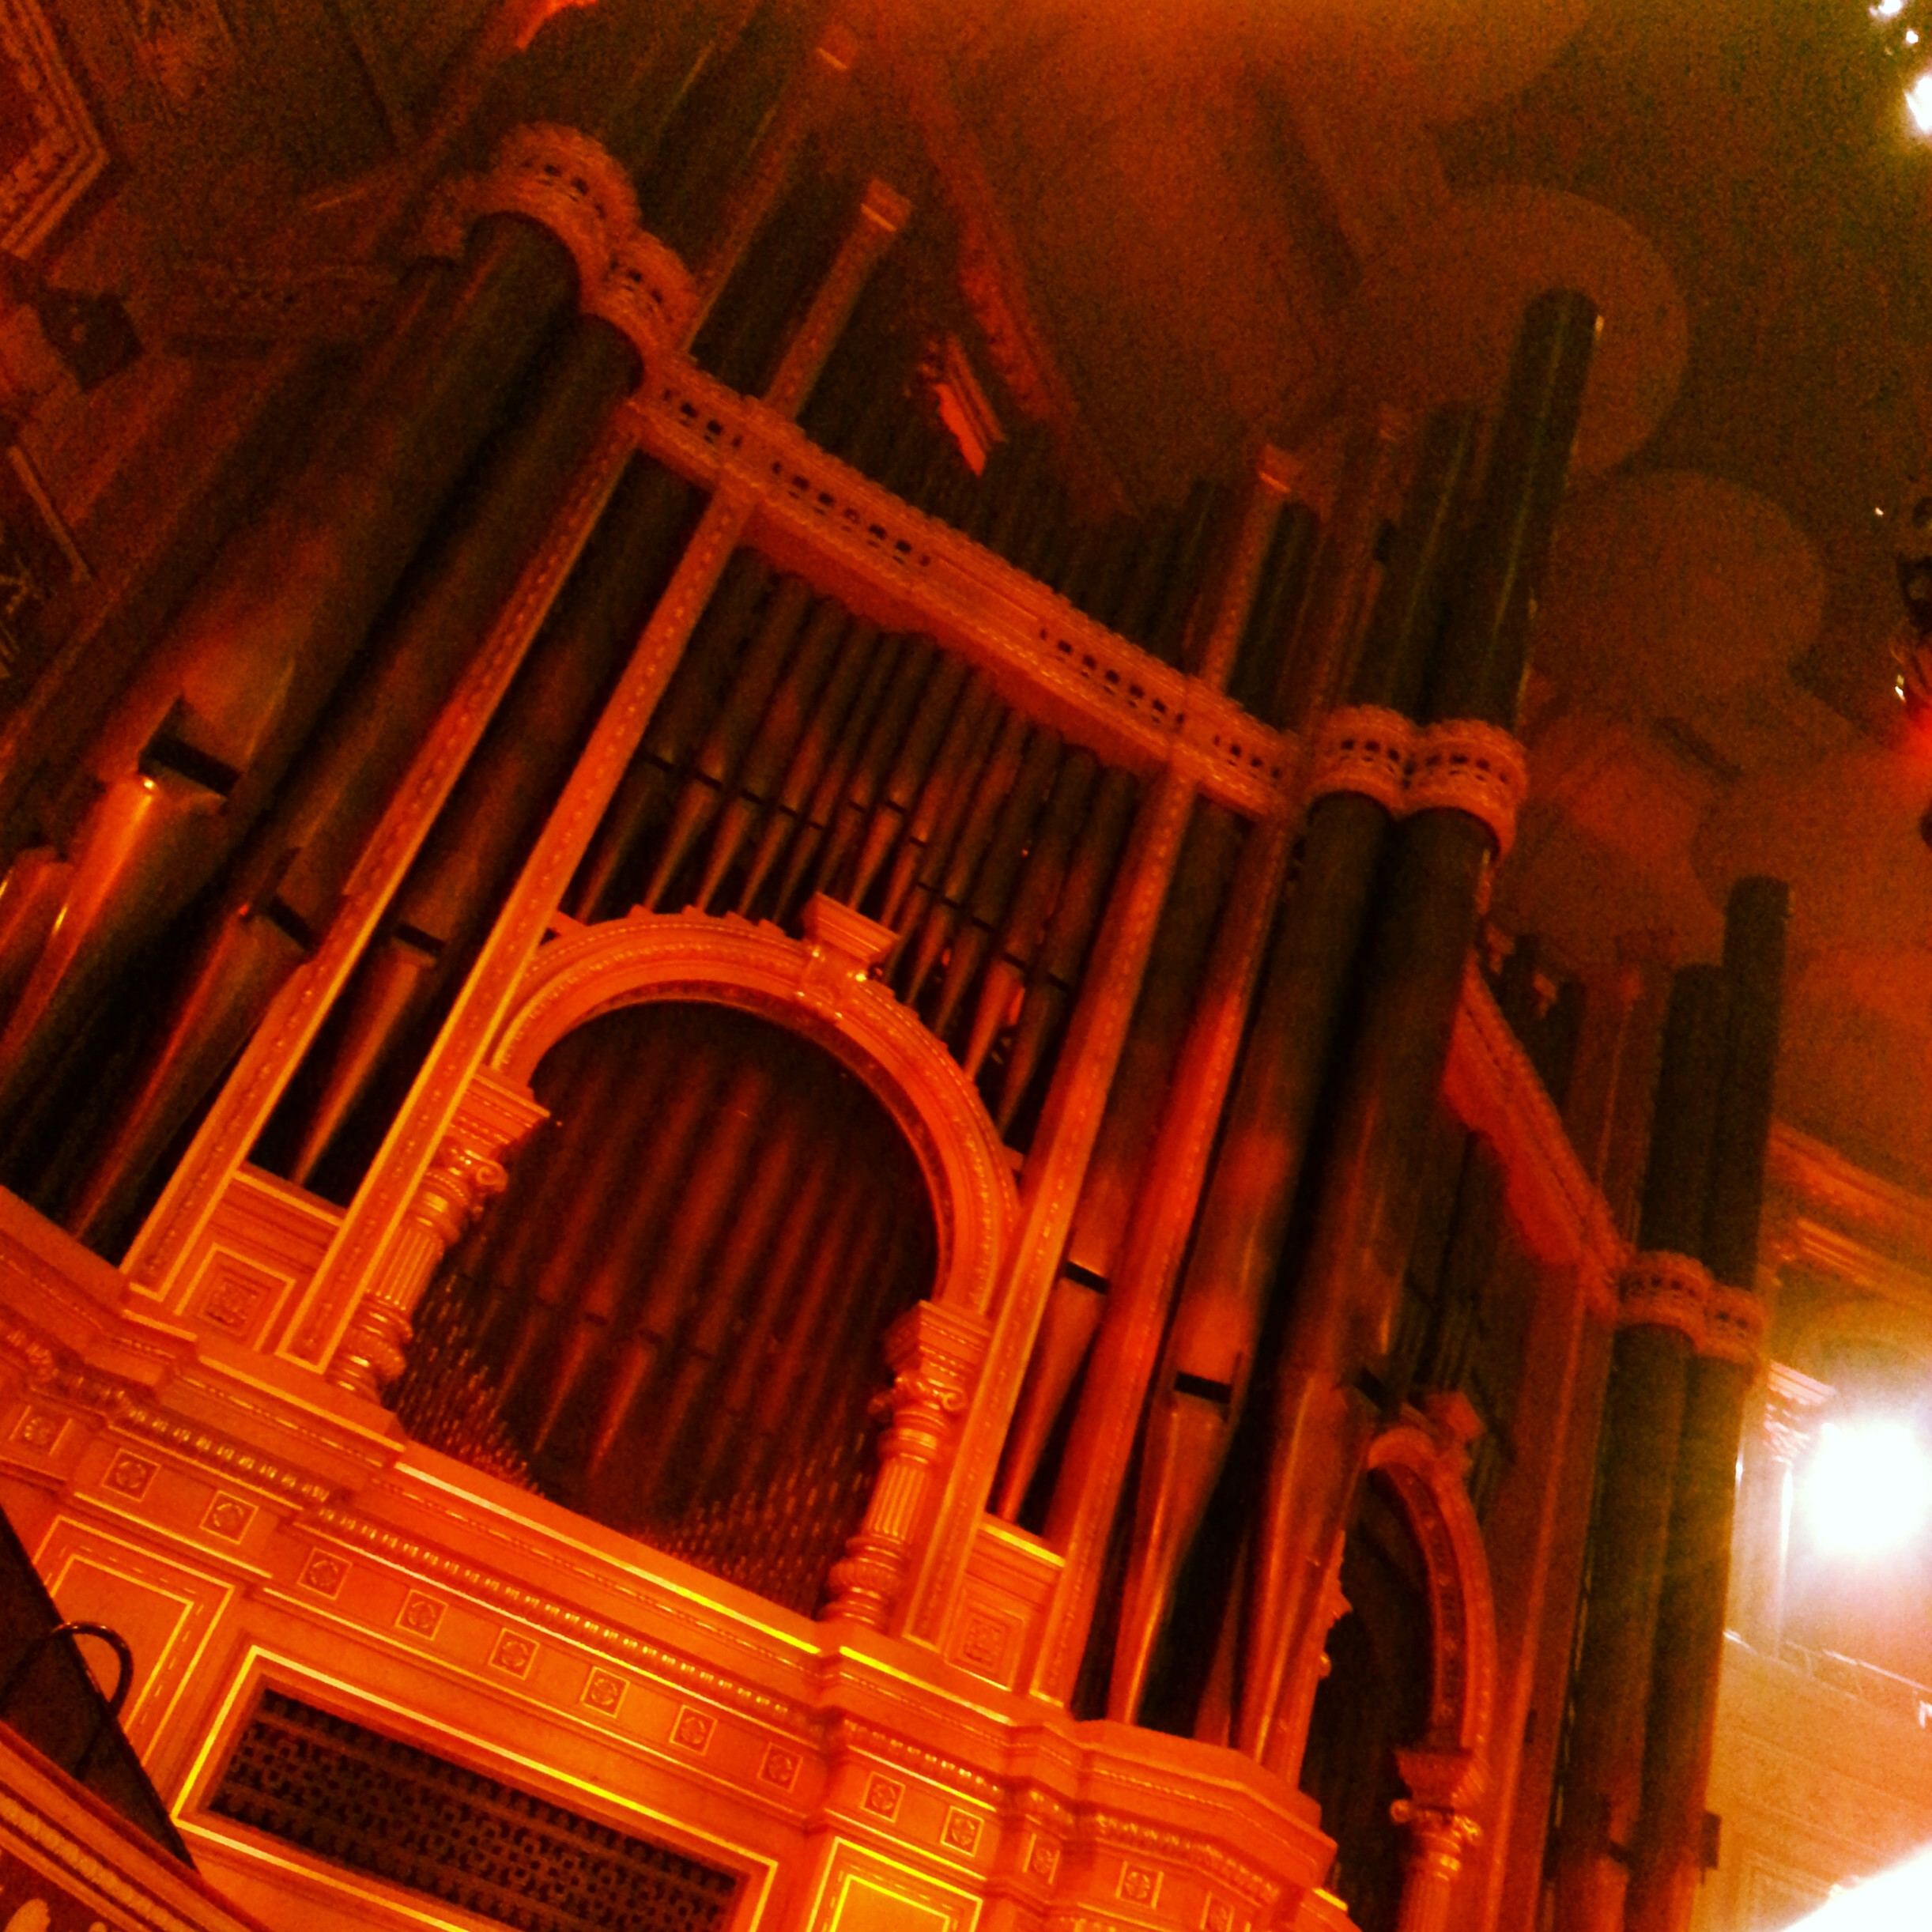 The Royal Albert Hall Organ